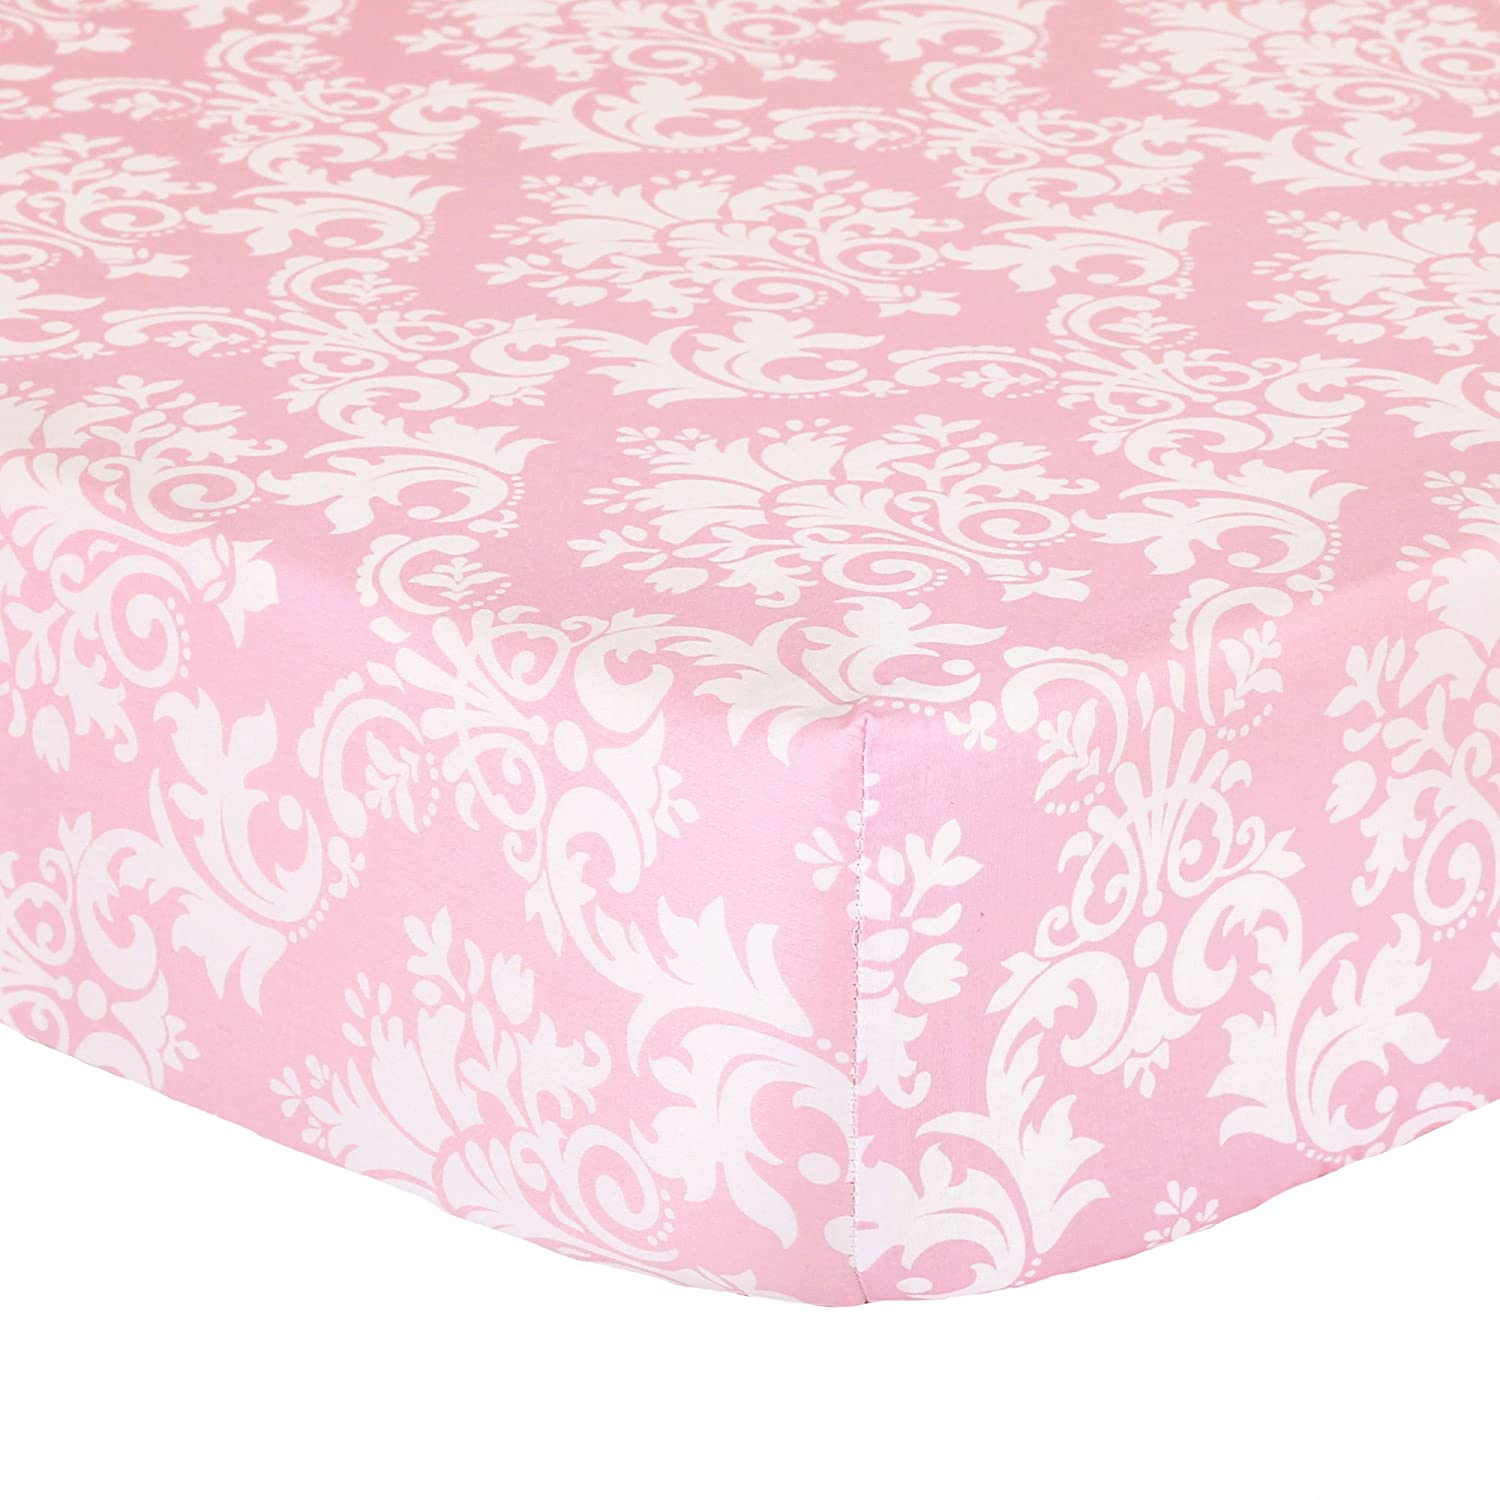 Pink Damask Fitted Crib Sheet - 100% Cotton Sateen Floral Design by The Peanut Shell   B01HNAEH4O